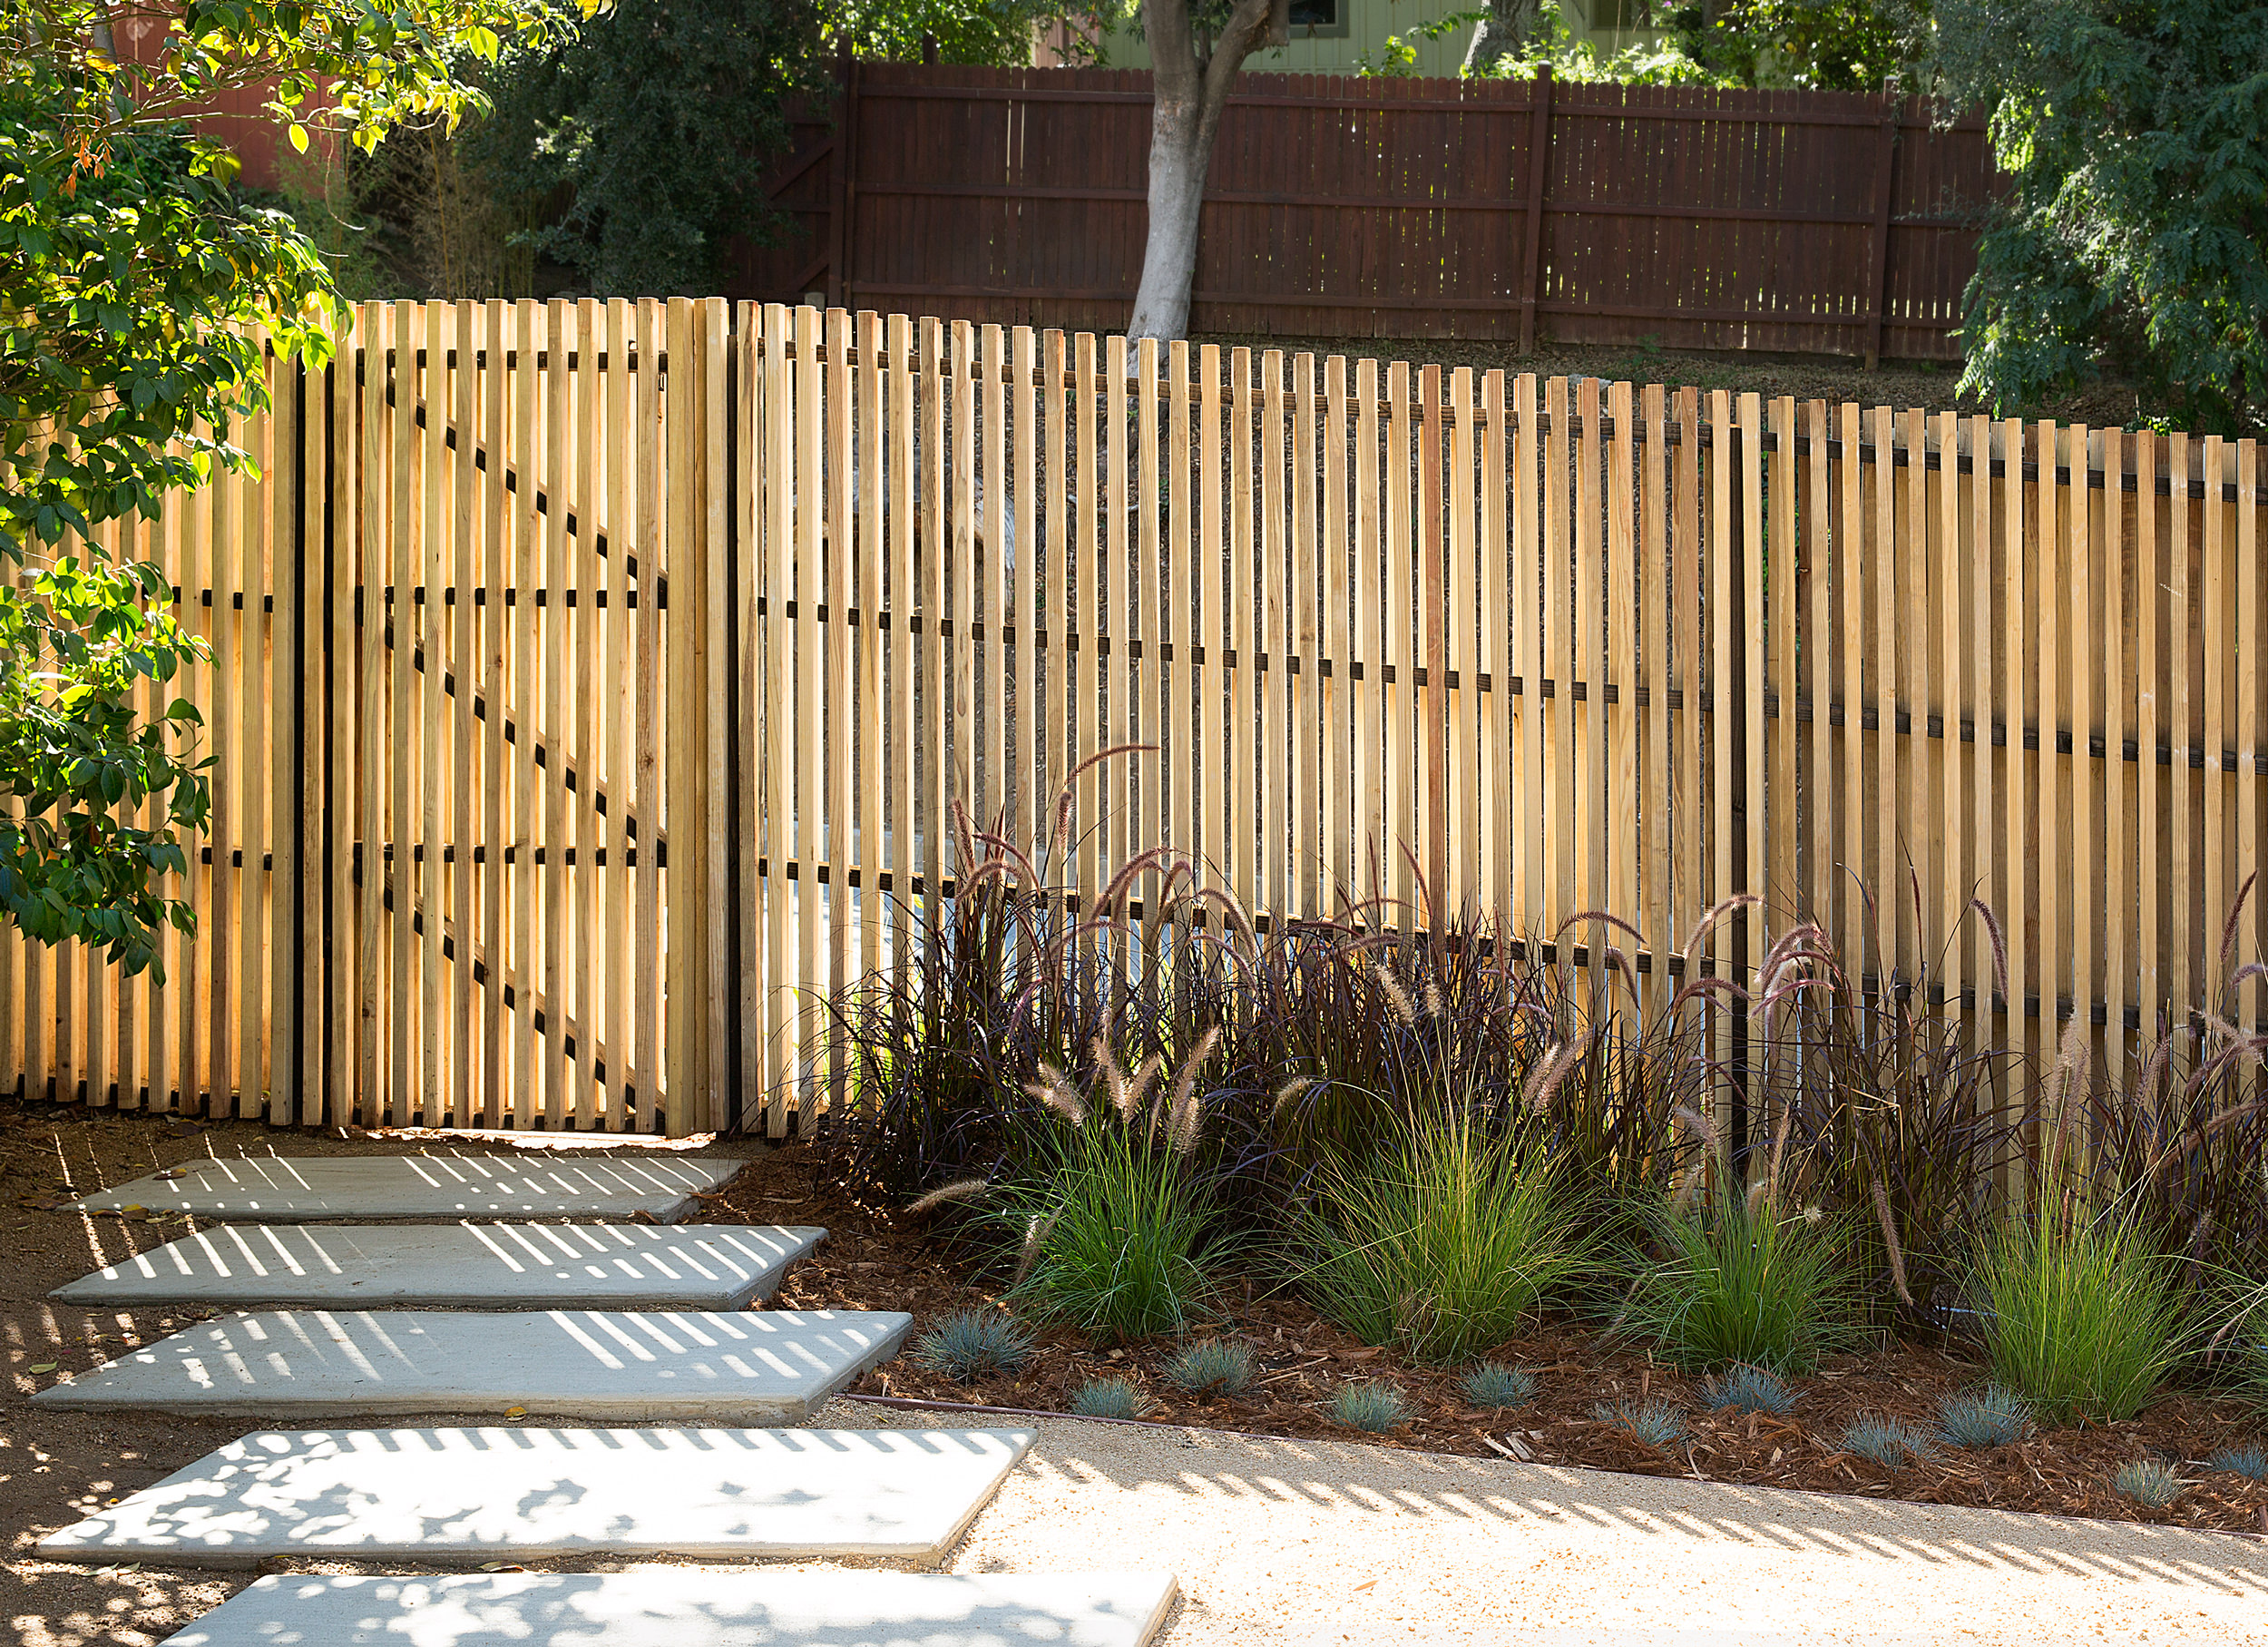 The fence provides privacy while letting light into the front yard.